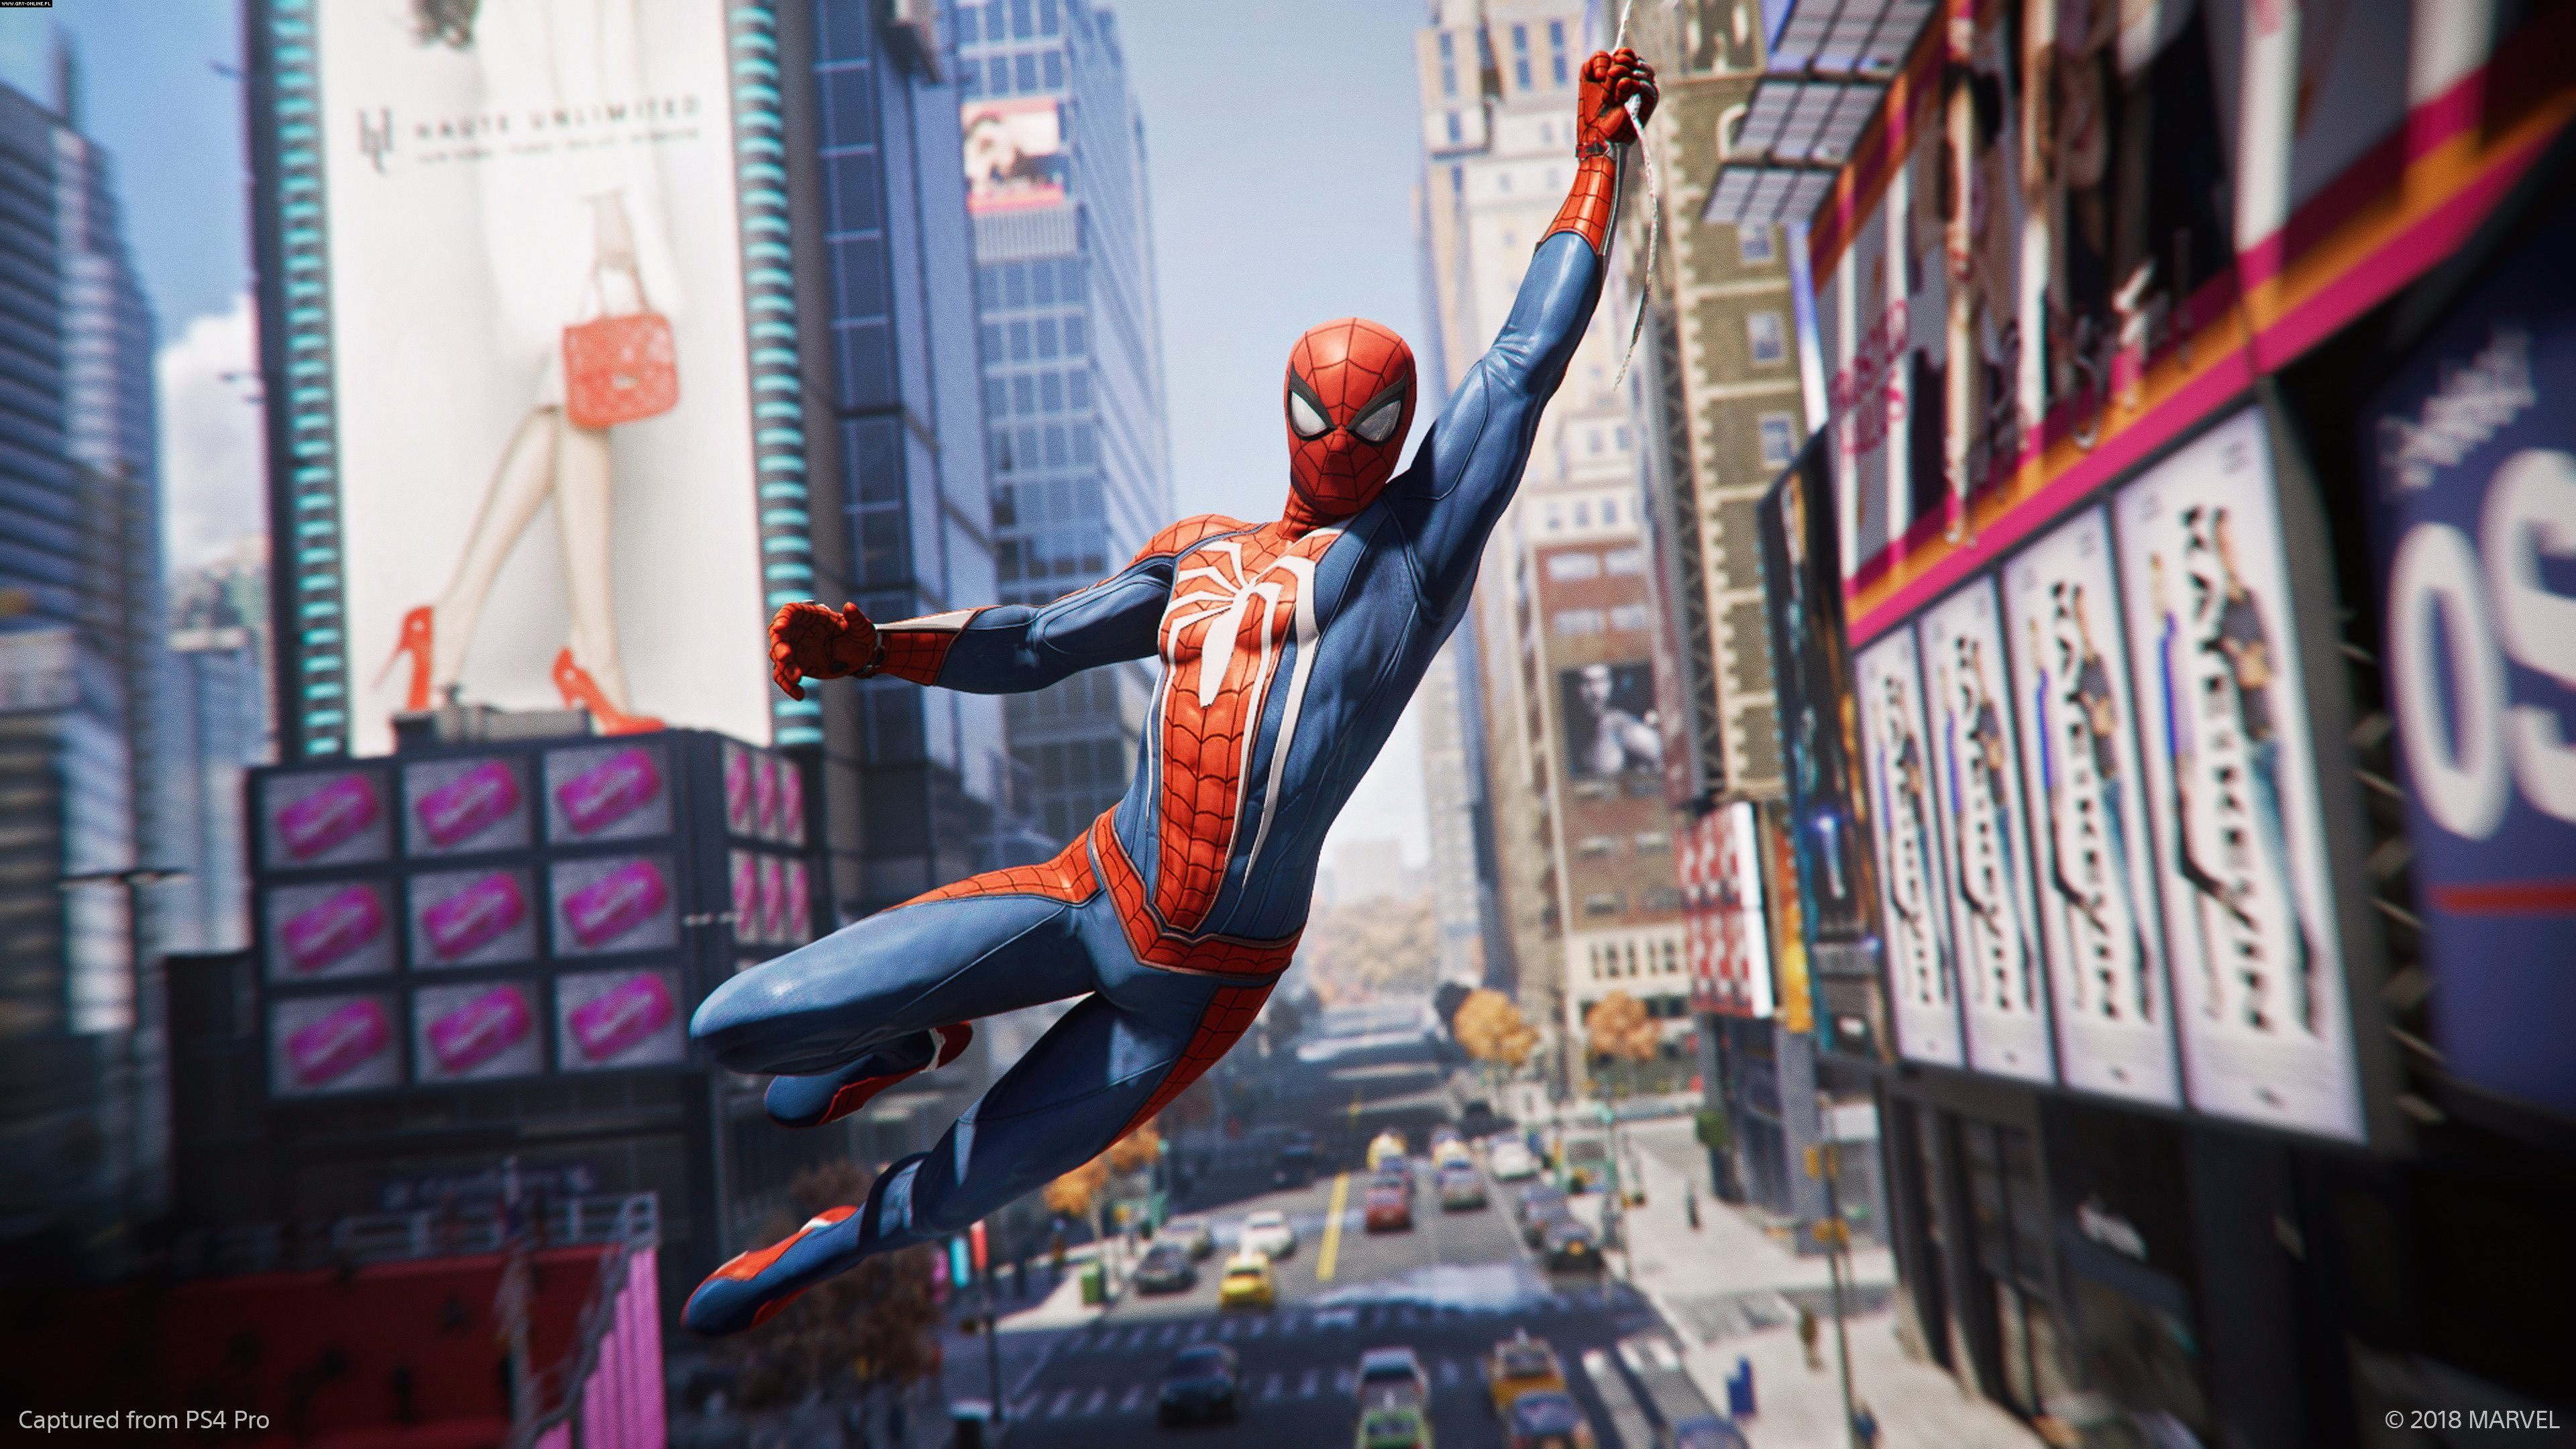 Spider-Man PS4 Games Image 22/37, Insomniac Games, Sony Interactive Entertainment